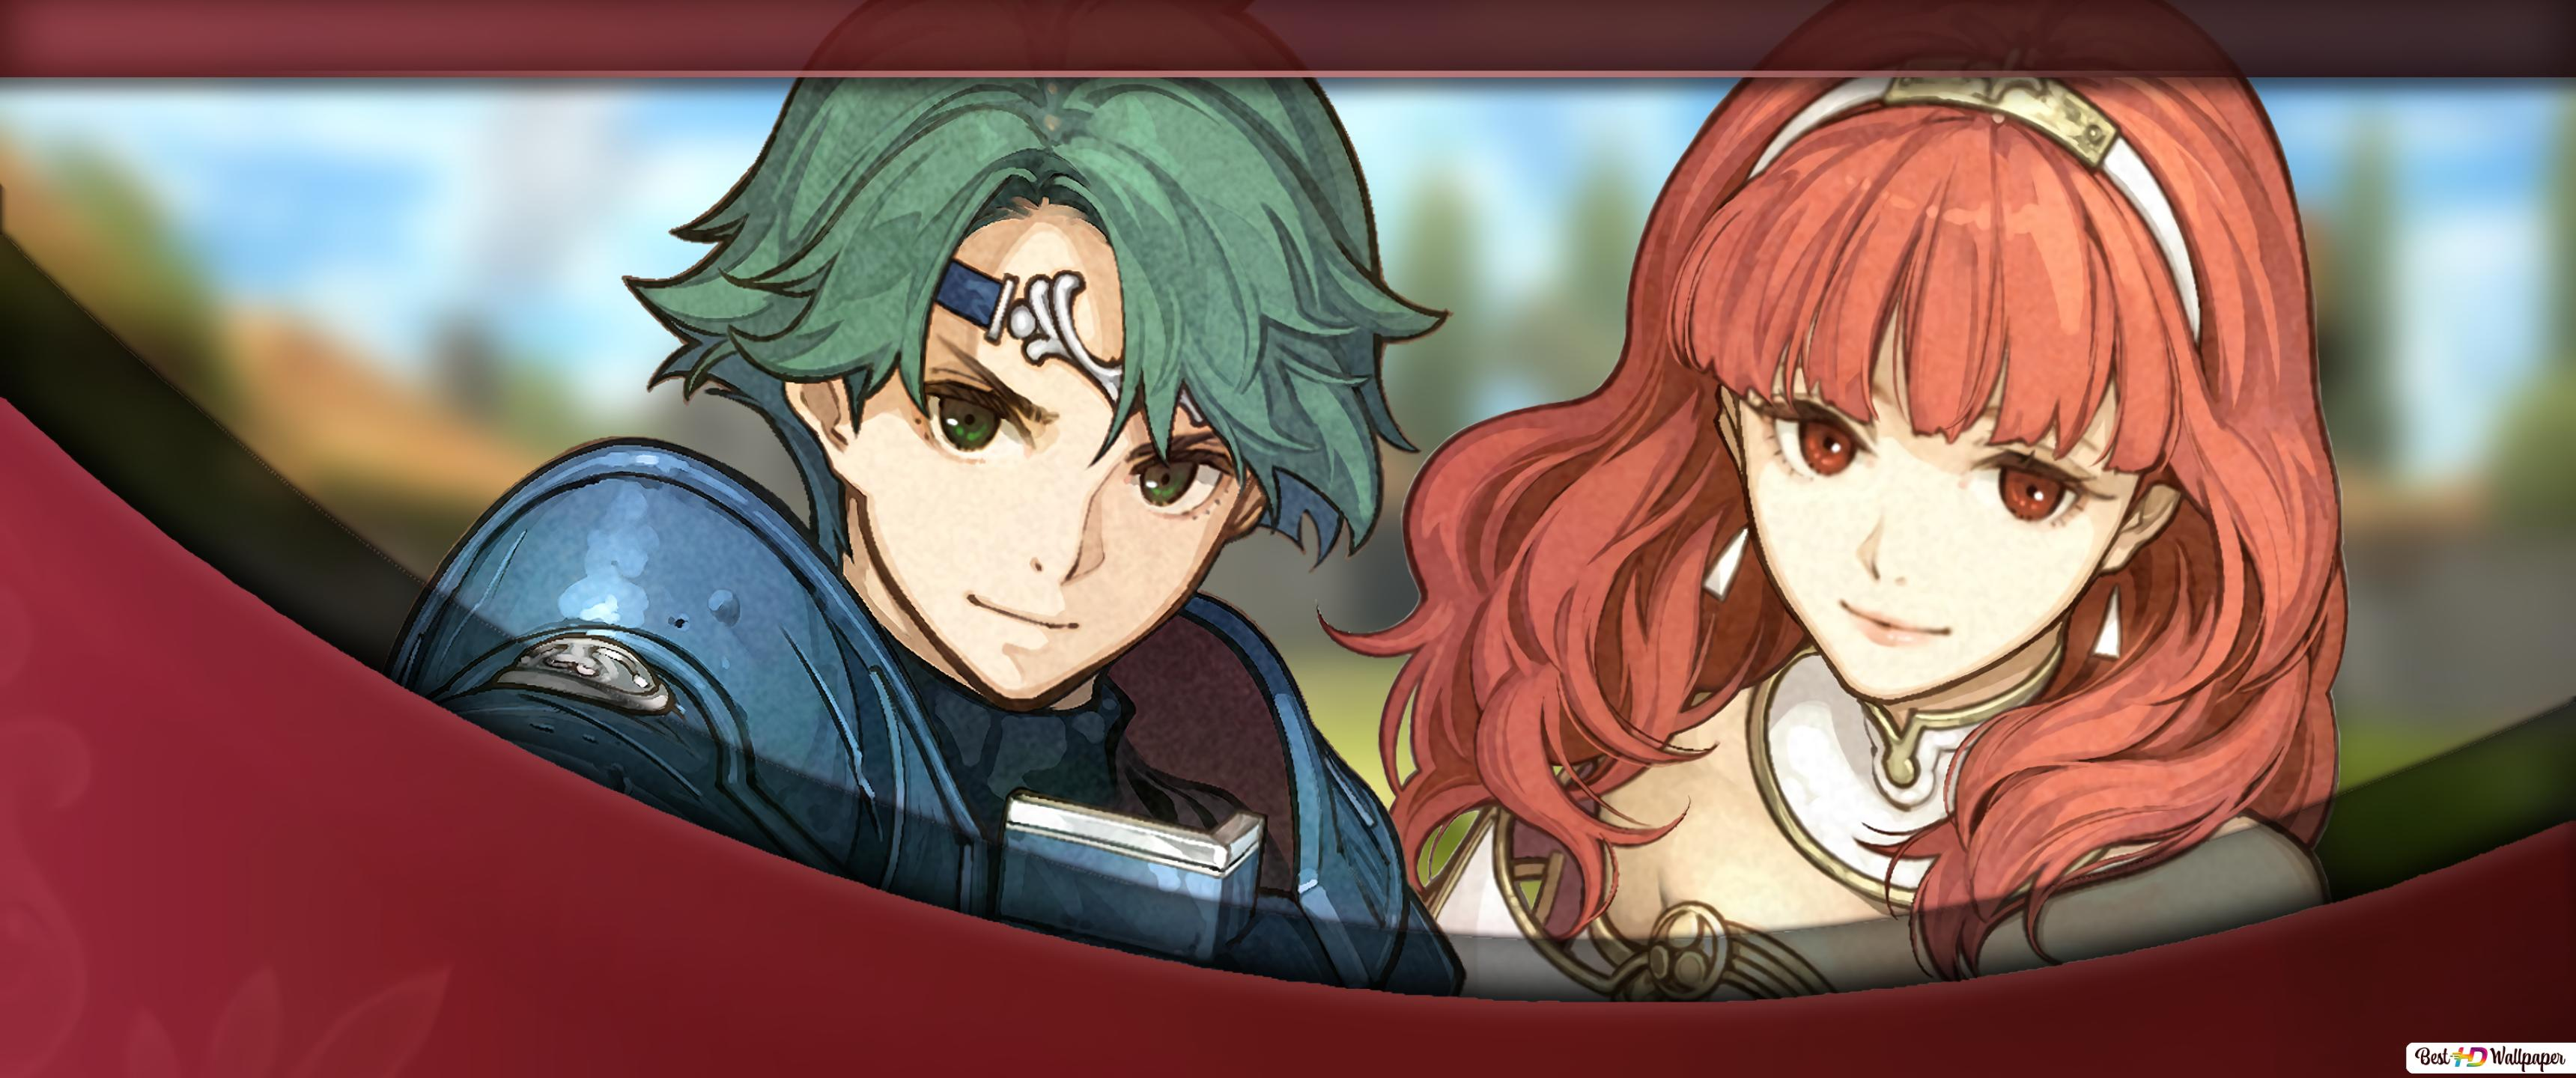 Fire Emblem Echoes Shadows Of Valentia Hd Wallpaper Download